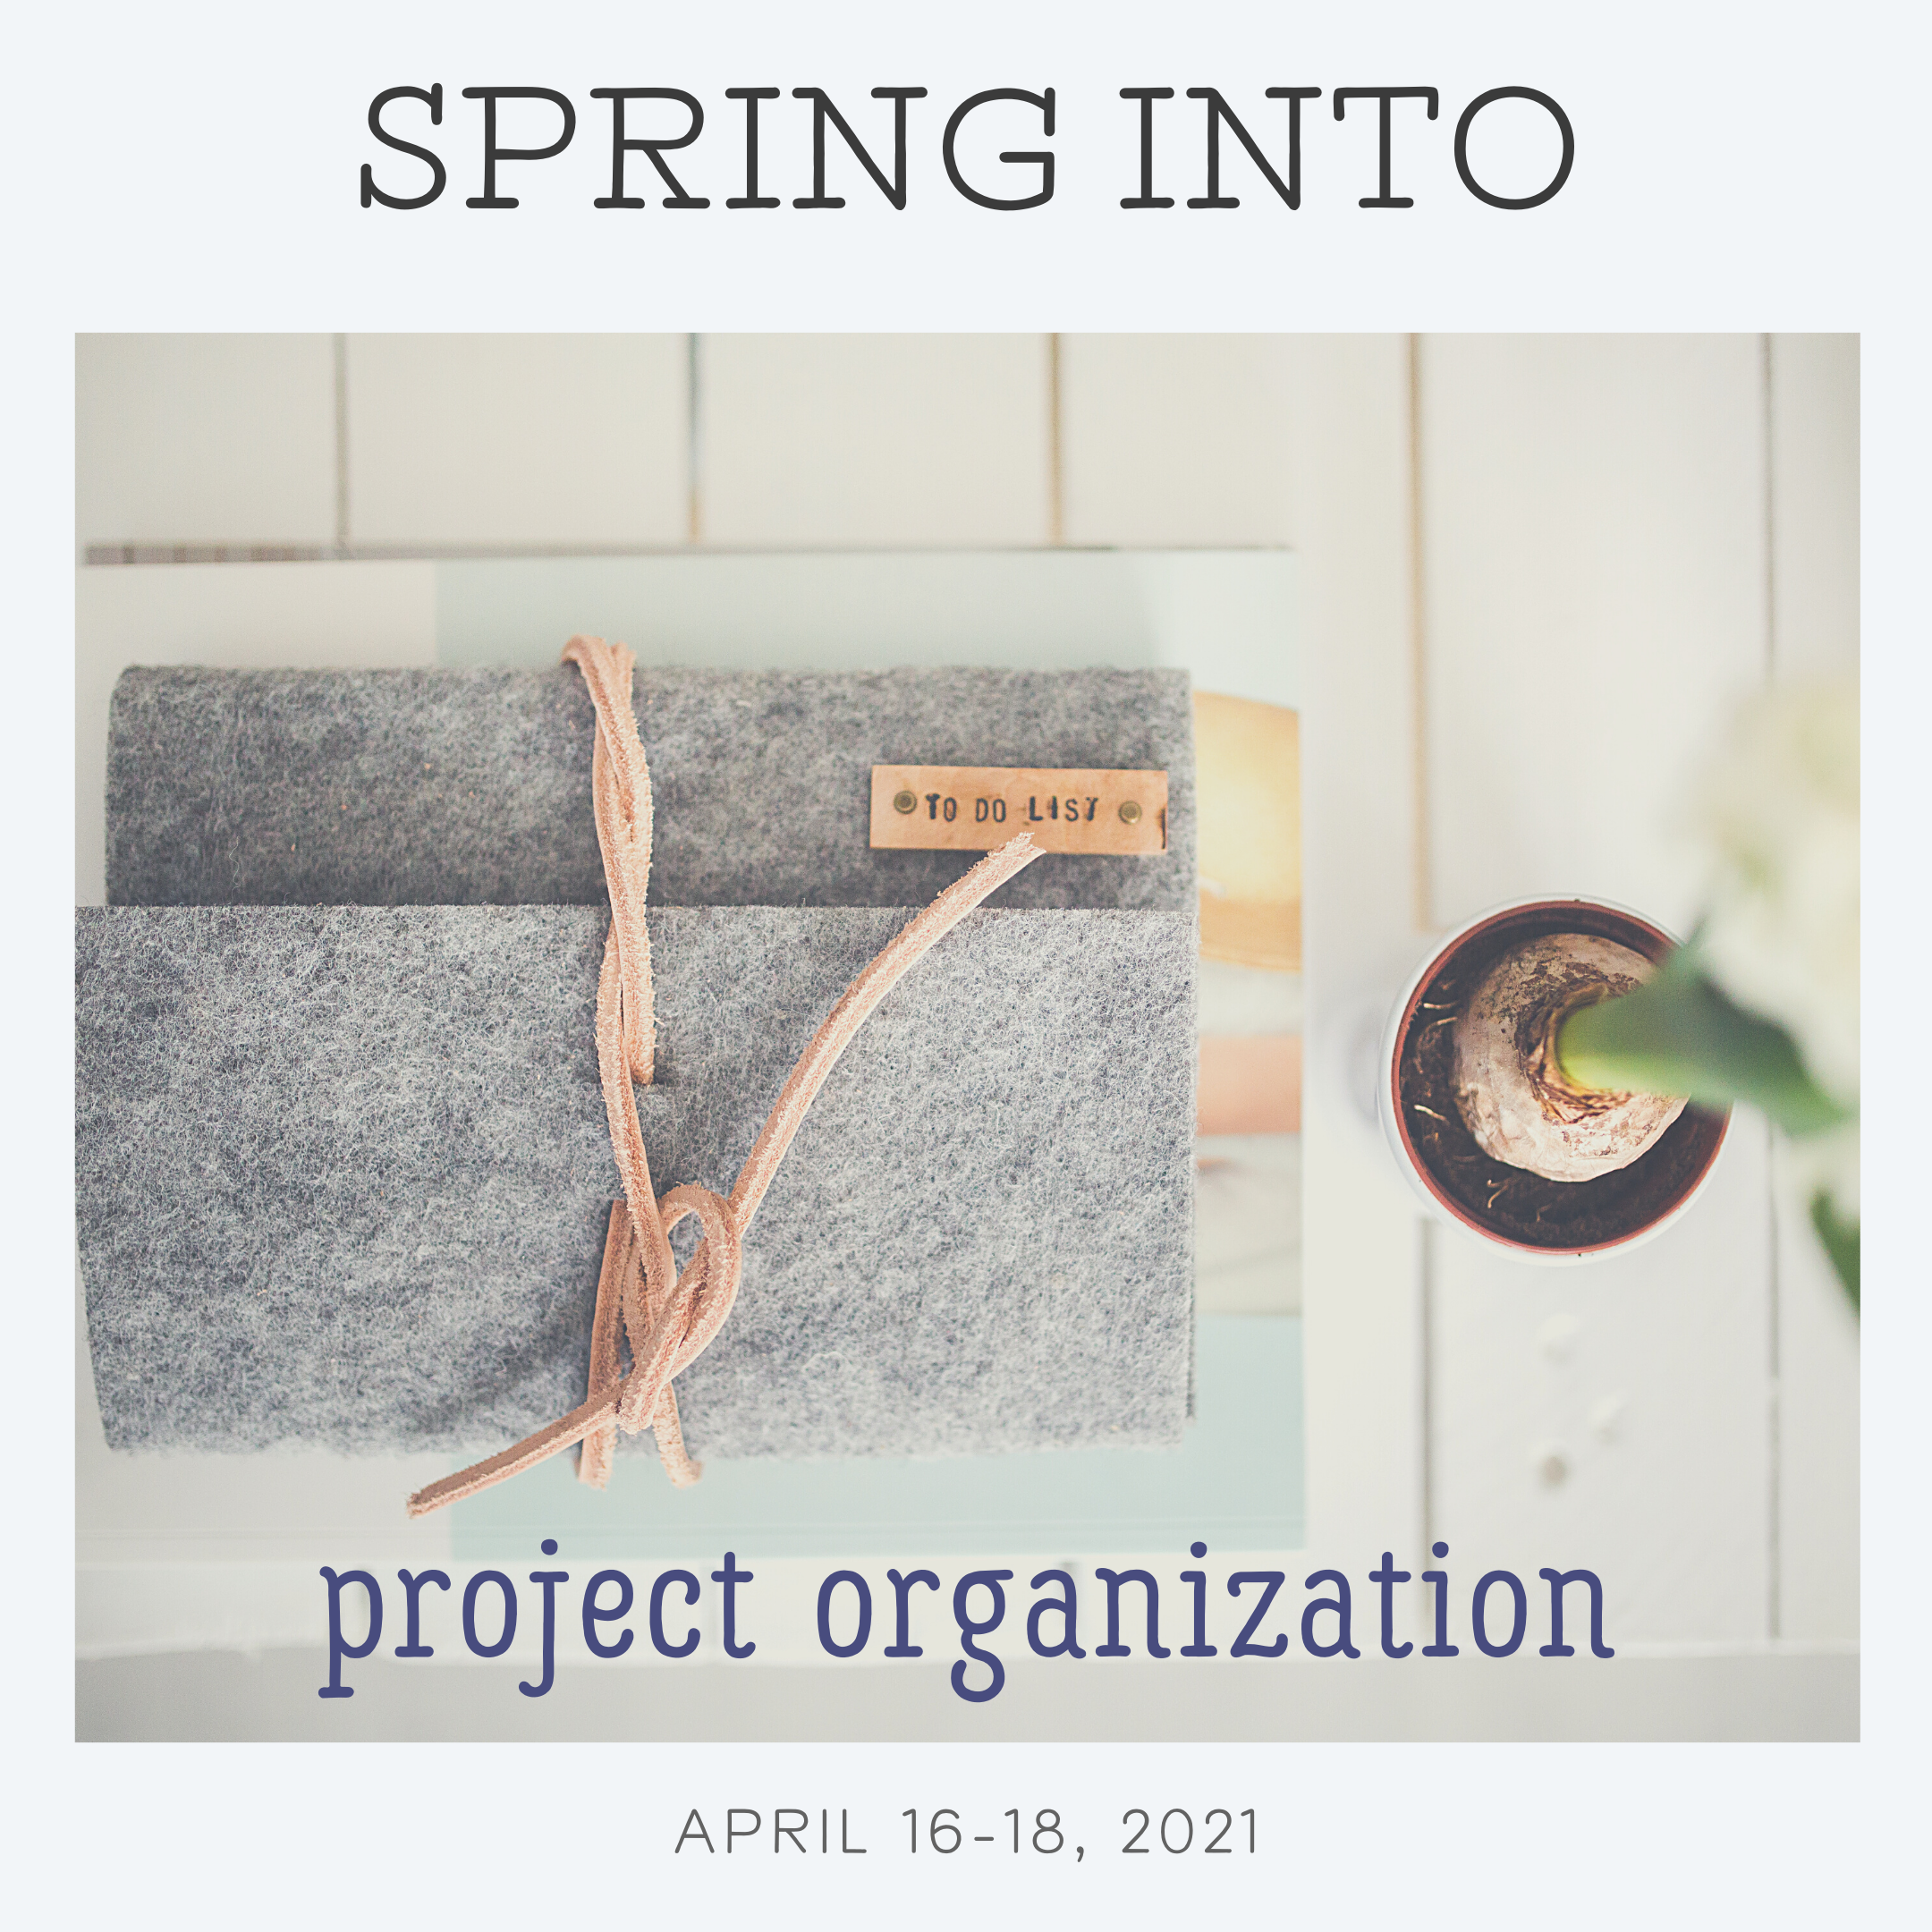 Spring into Project Organization